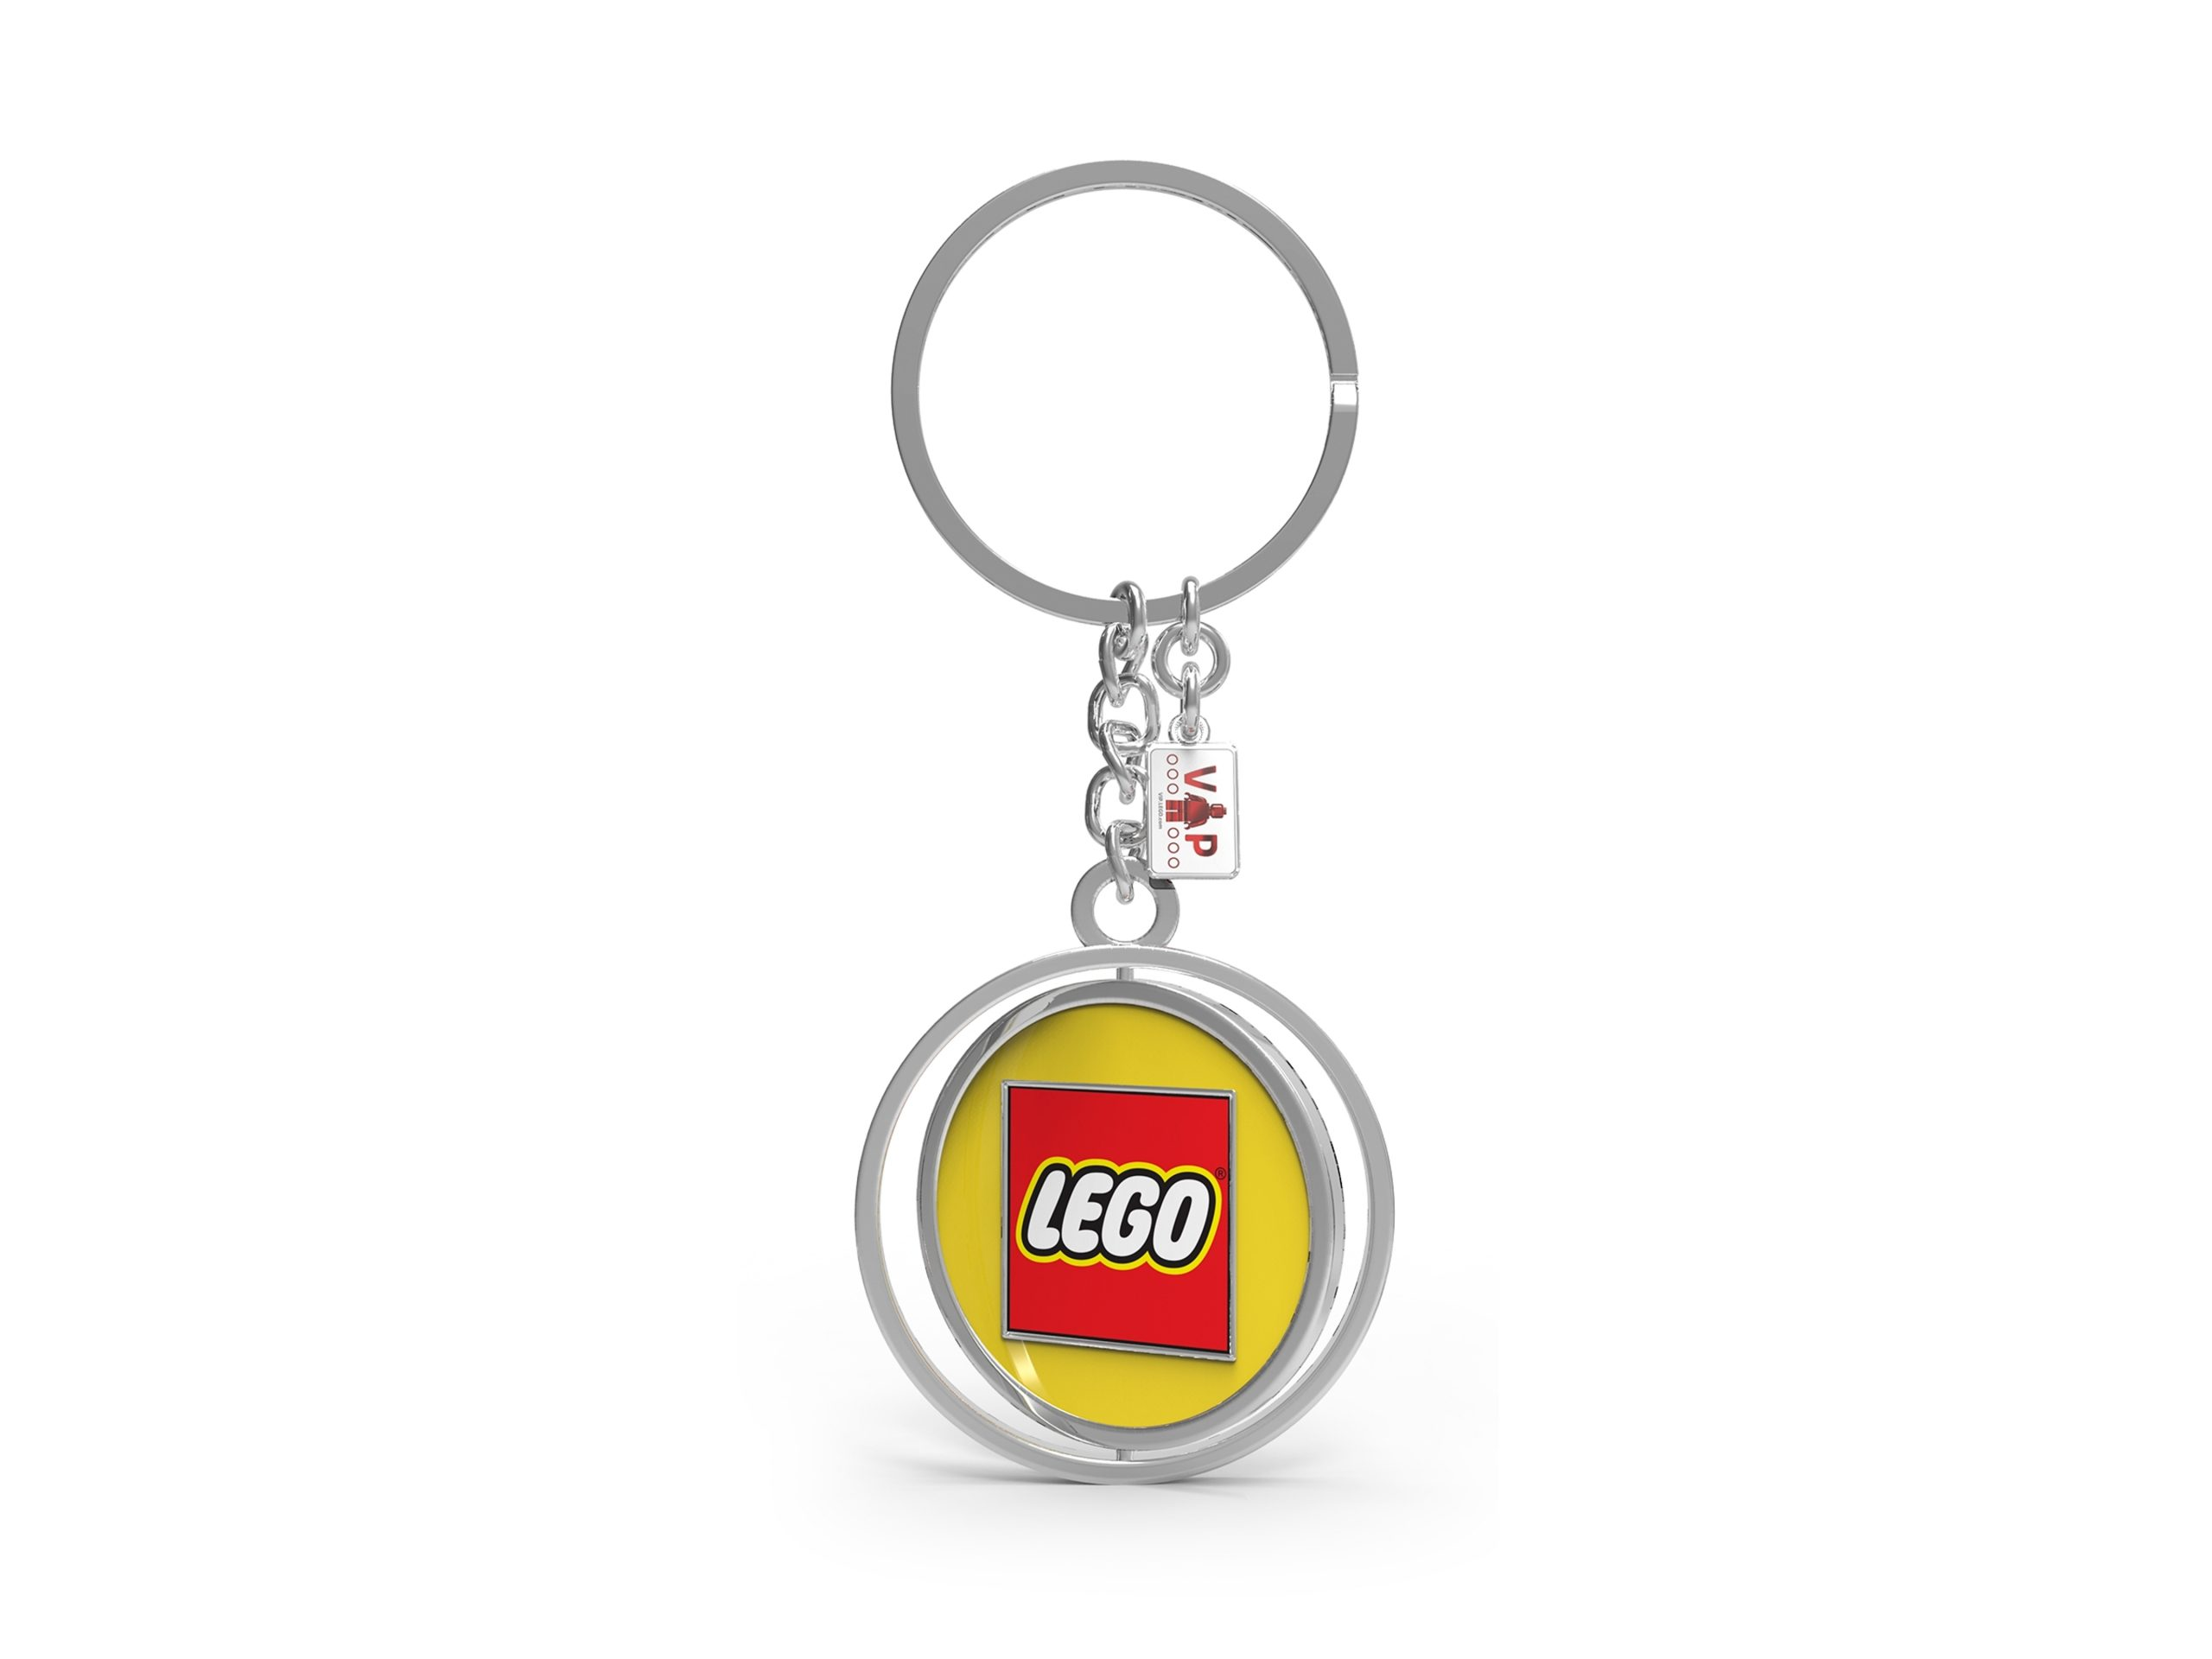 exclusive lego 5005822 ford mustang key chain scaled